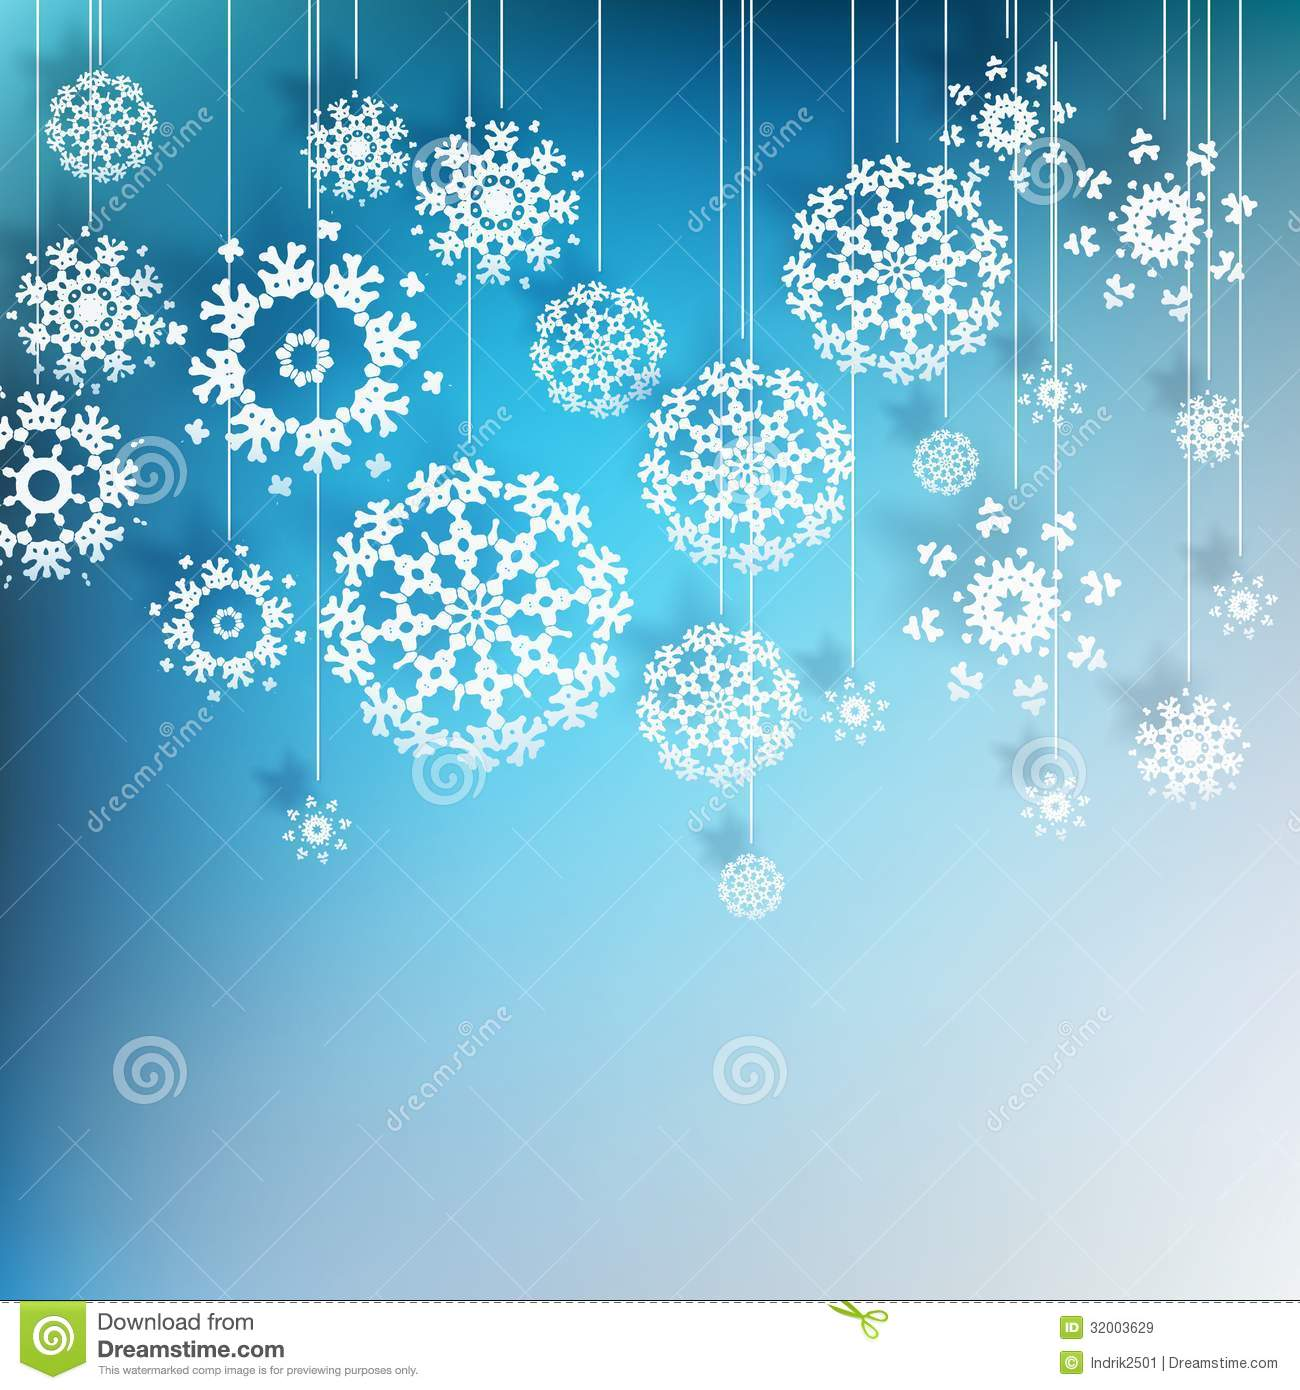 High Definition Snowflakes On Blue. EPS 10 Royalty Free